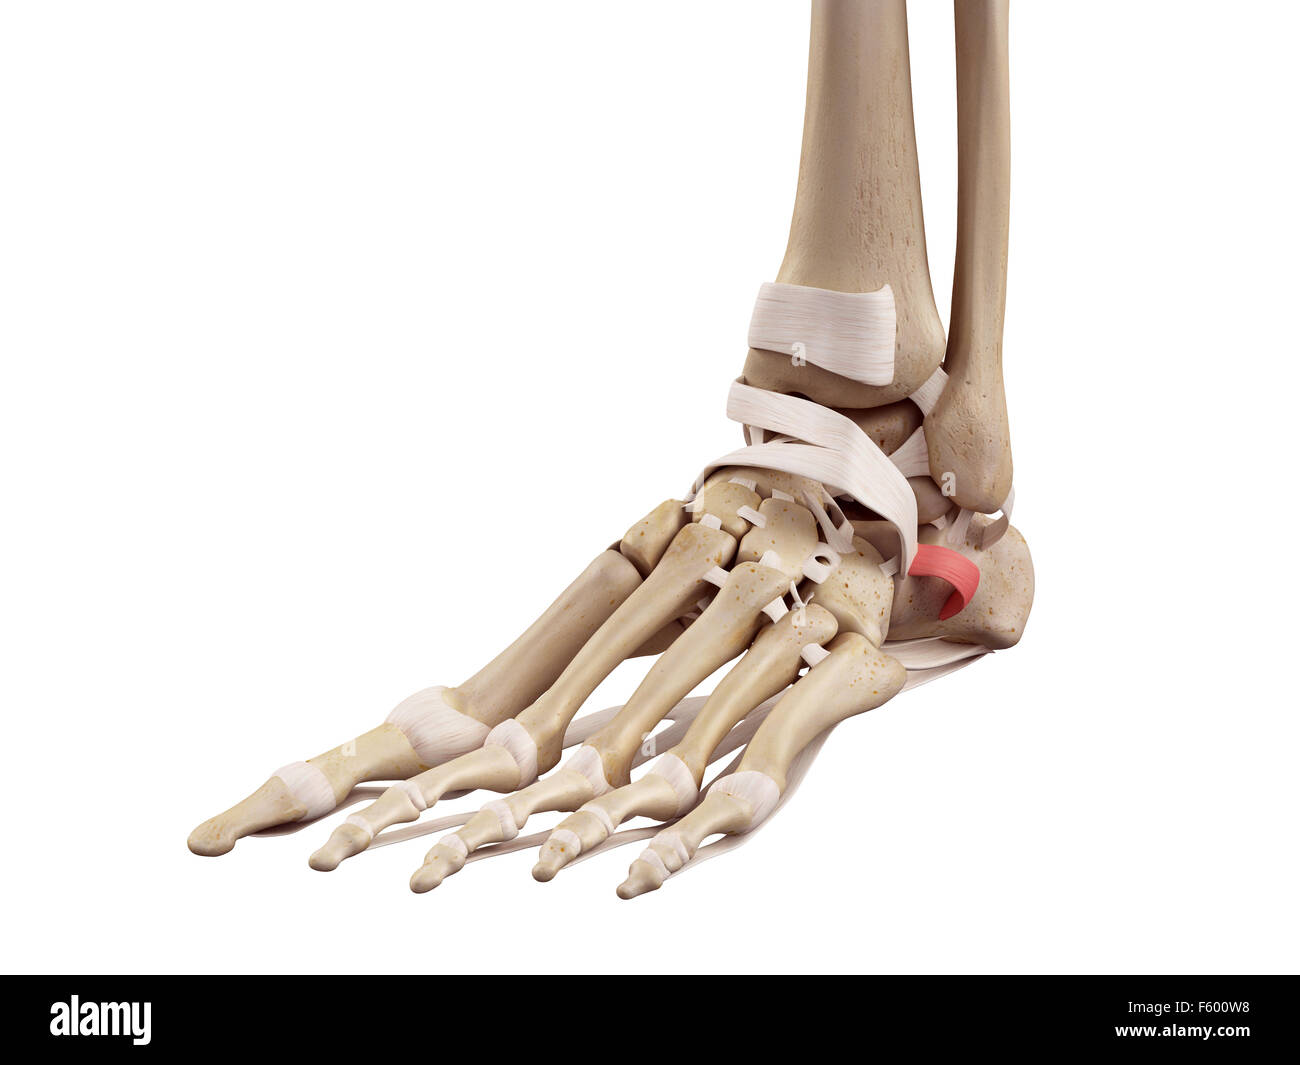 medical accurate illustration of the inferior peroneal retinaculum - Stock Image